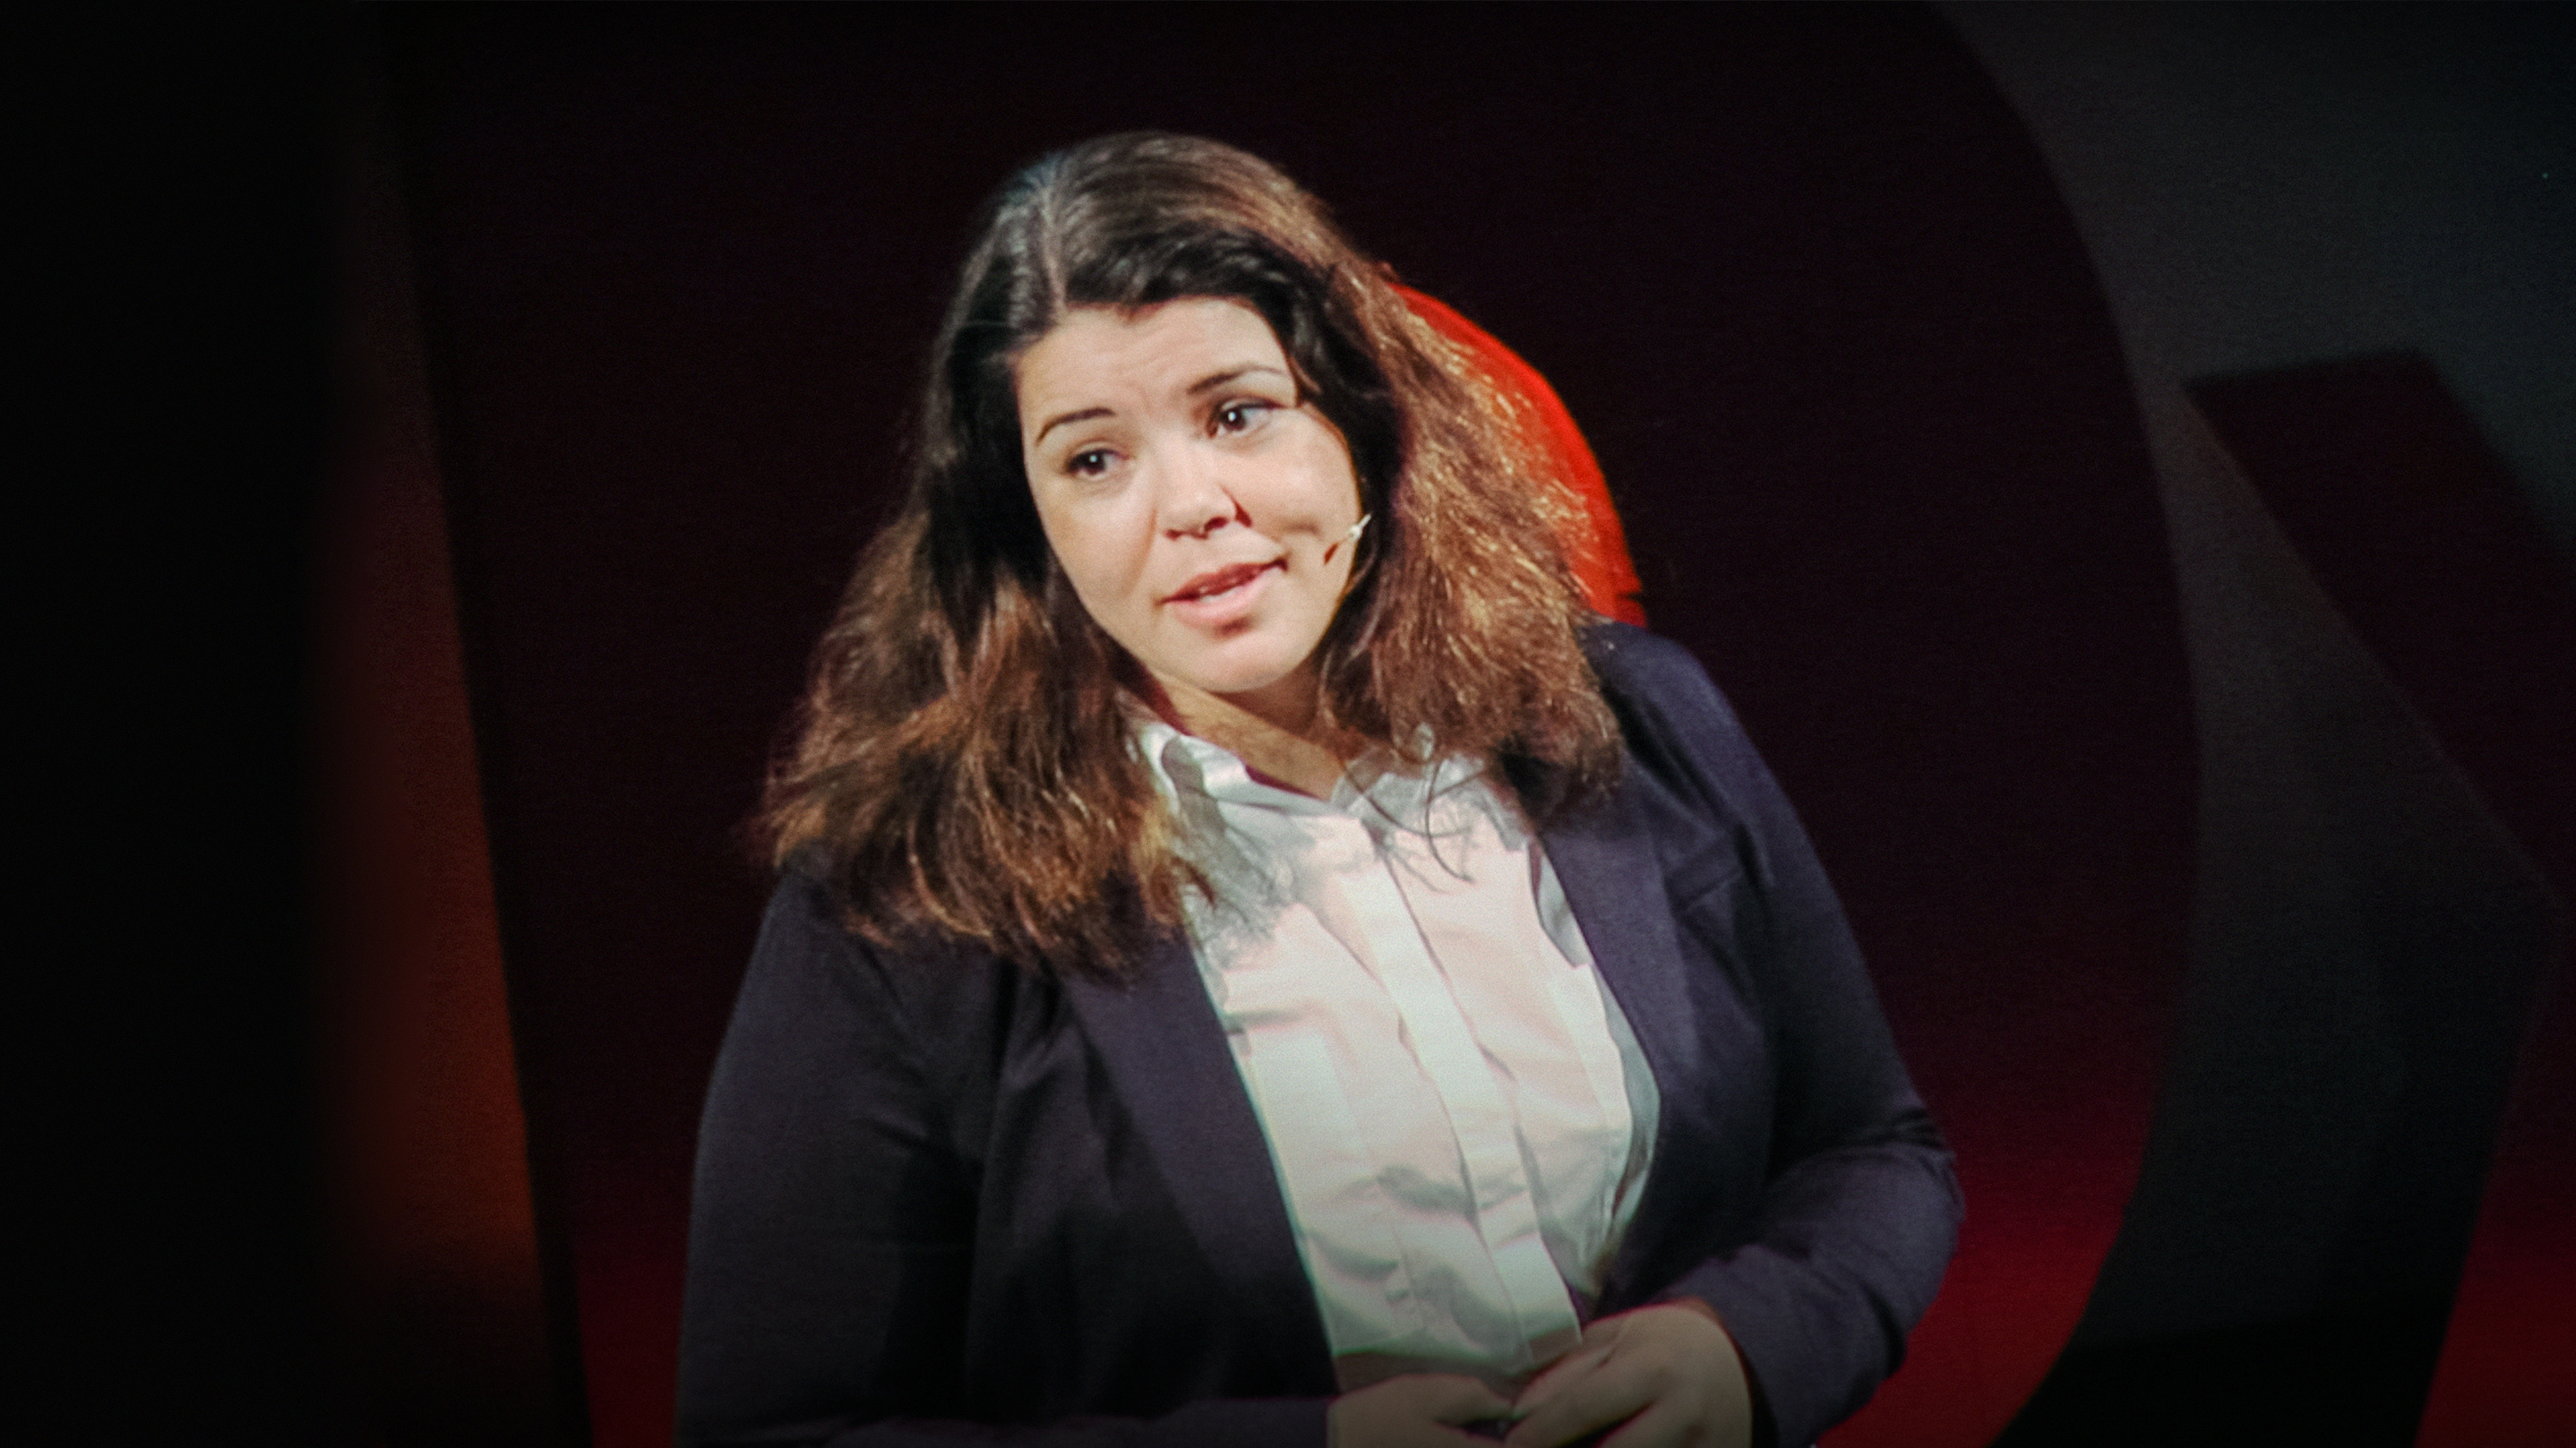 Image for Celeste Headlee: How Can We Have Civil Conversations With The Other Side? Article